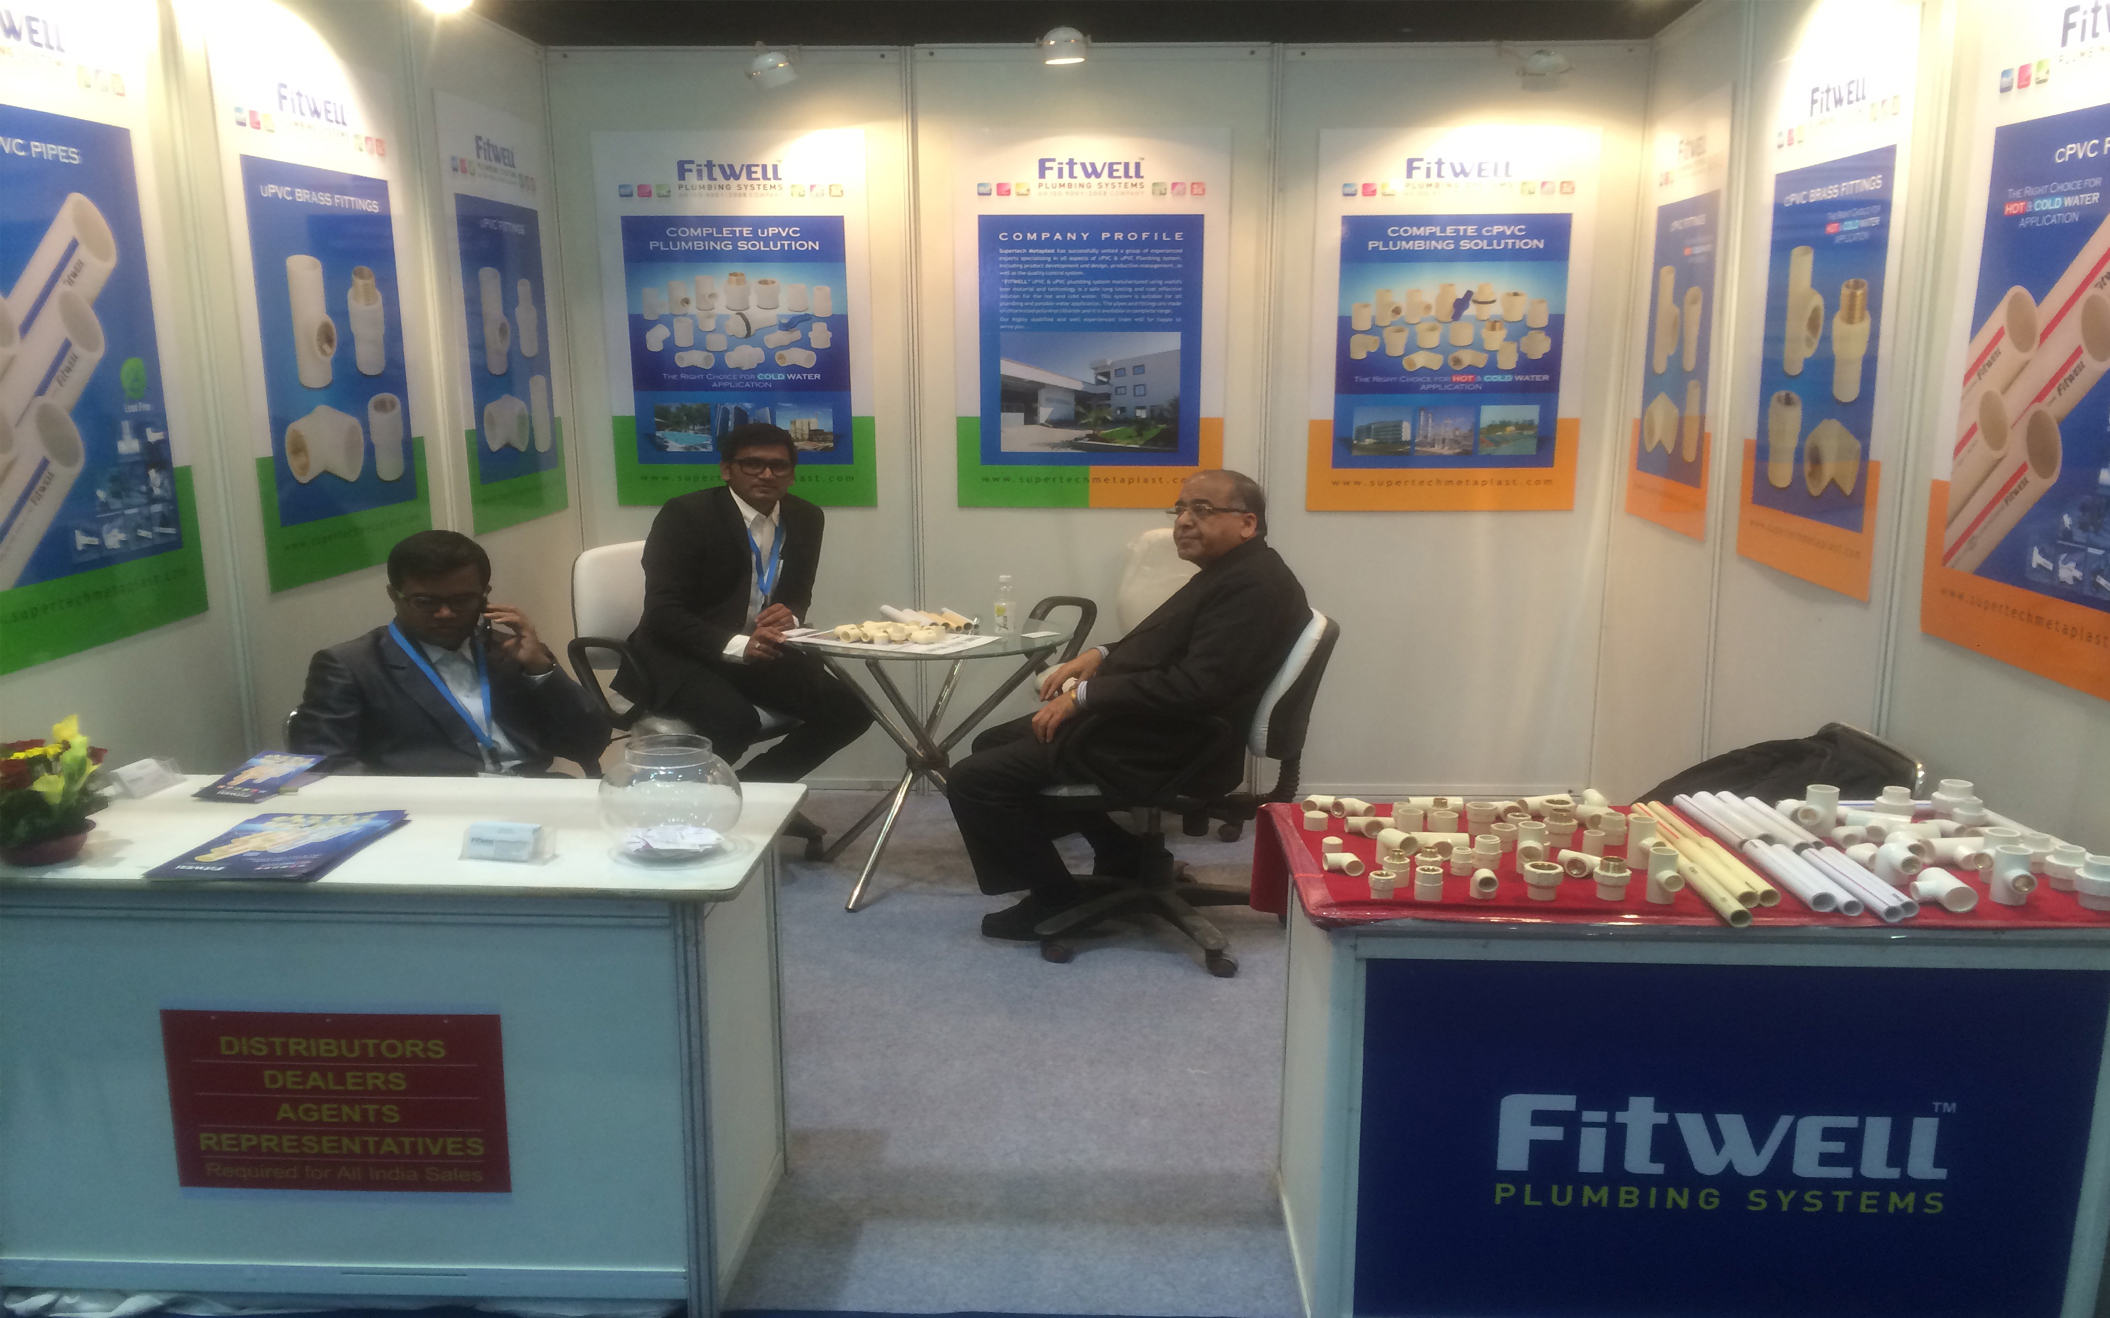 UPVC Pipe Manufacturer,CPVC Pipe Fittings Supplier - Fitwell